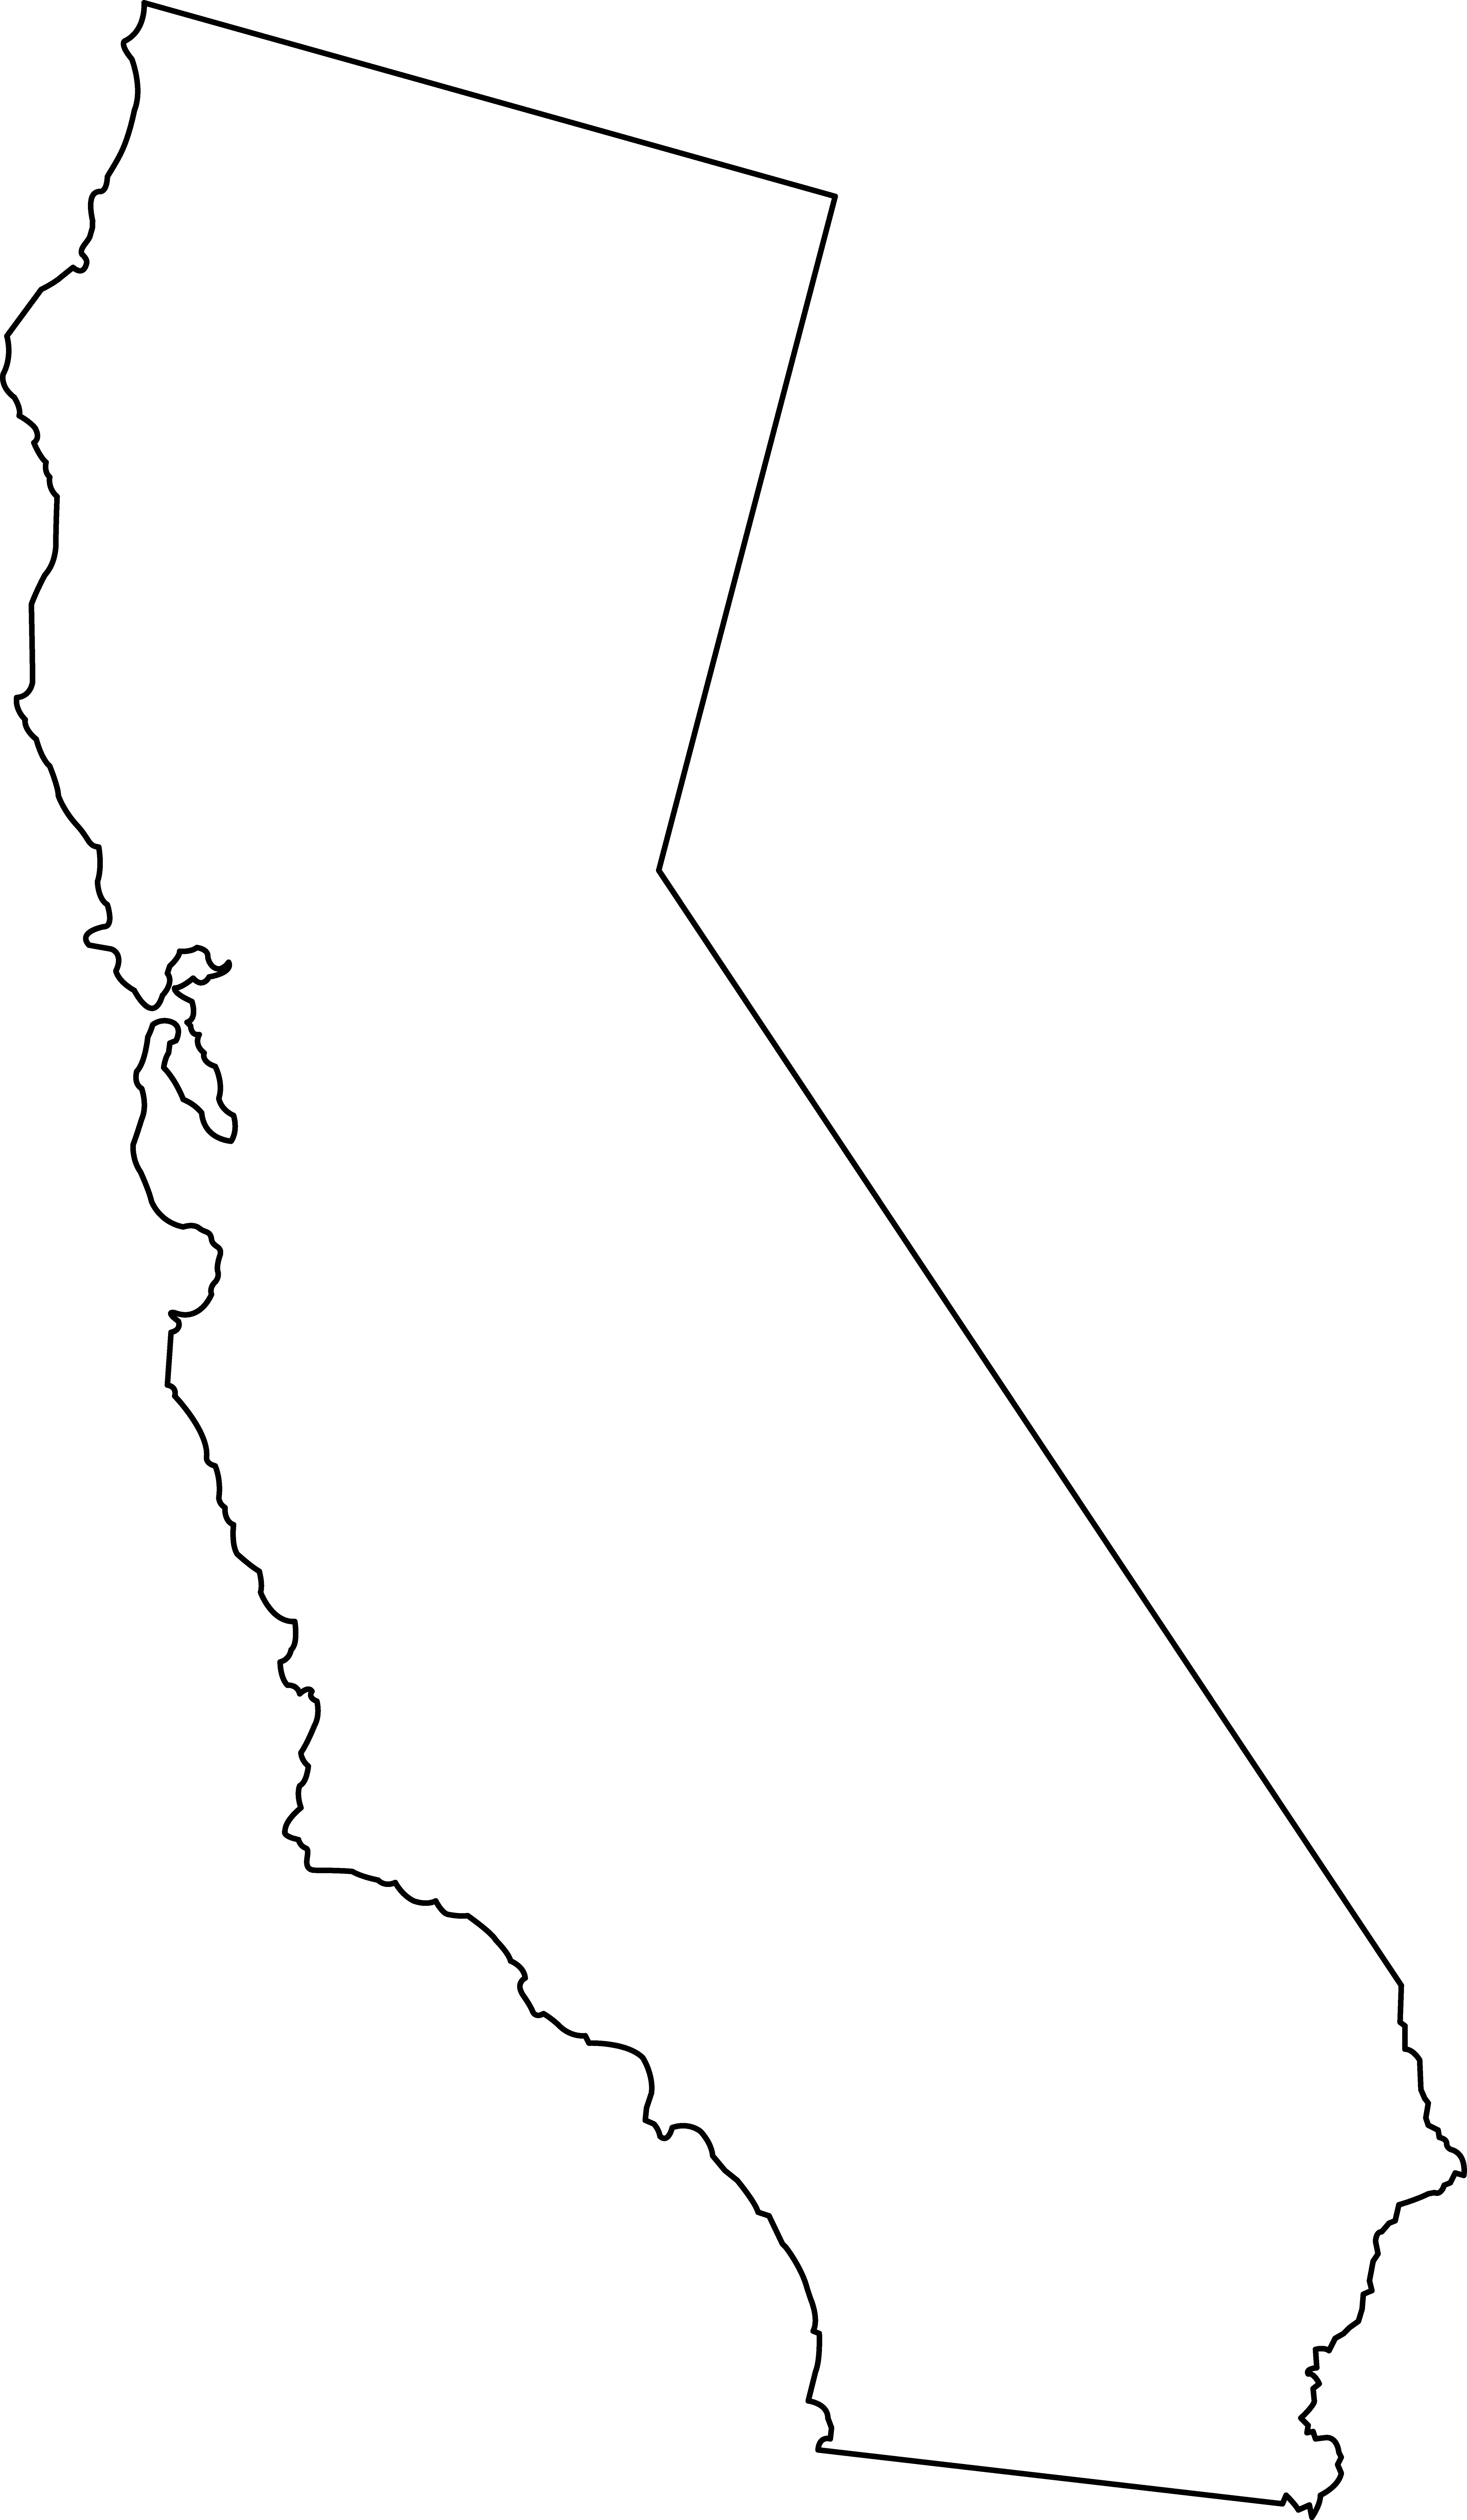 California clipart png. Collection of high